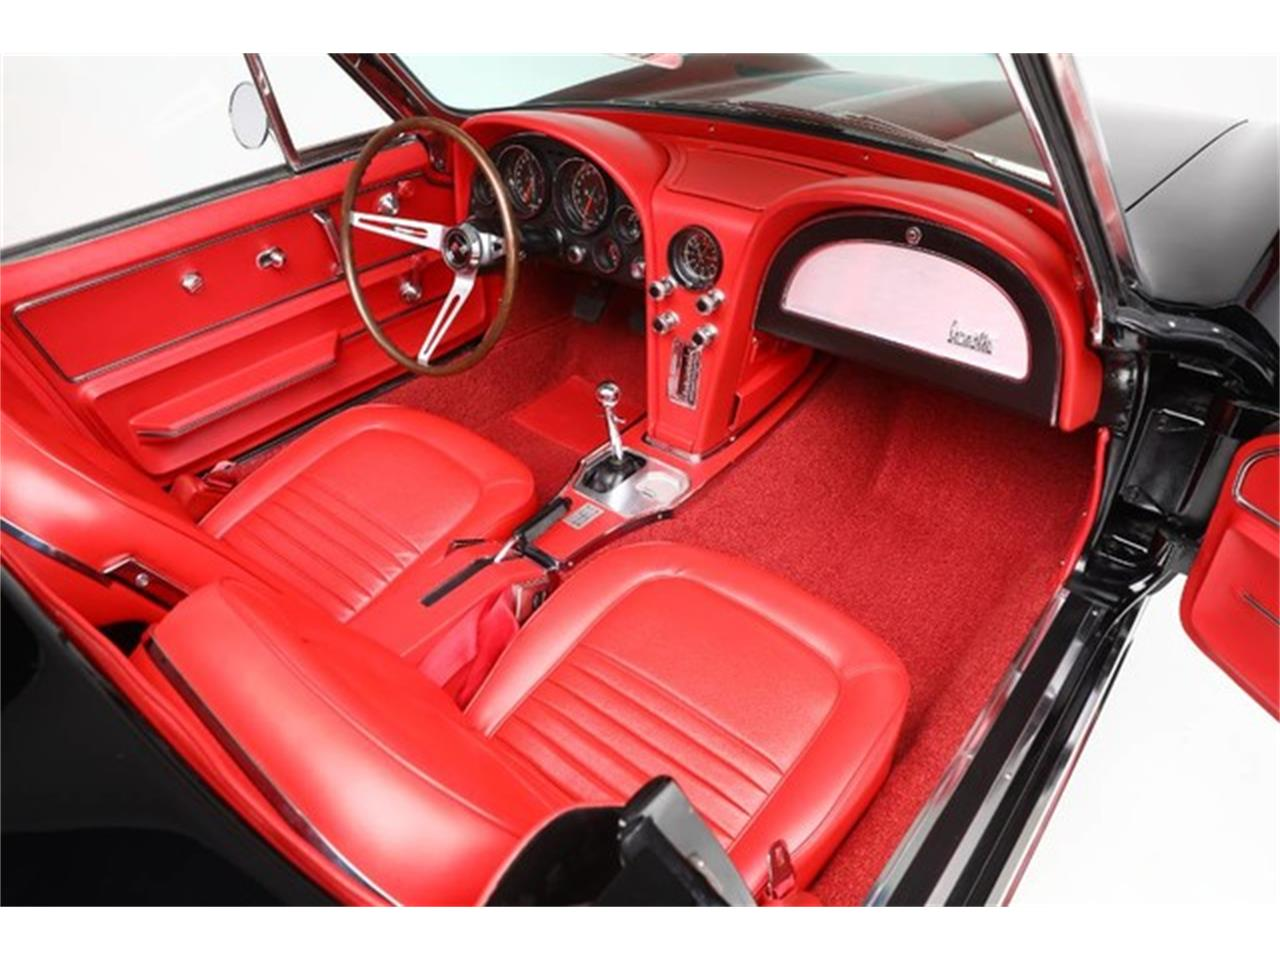 Large Picture of 1967 Corvette located in Clifton Park New York Auction Vehicle - PU42